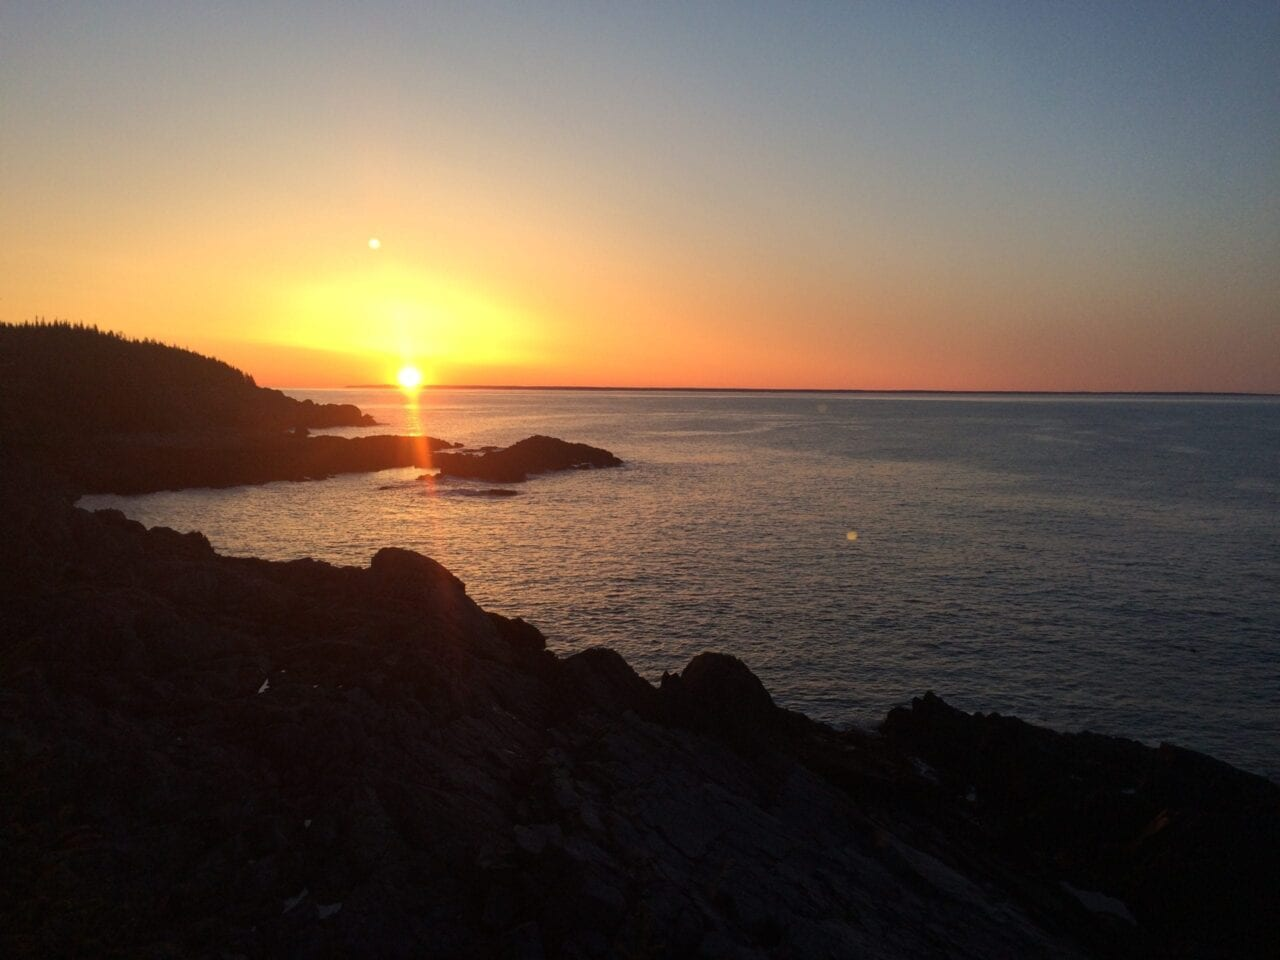 A sunrise glows over a rocky coastline and calm ocean waters.